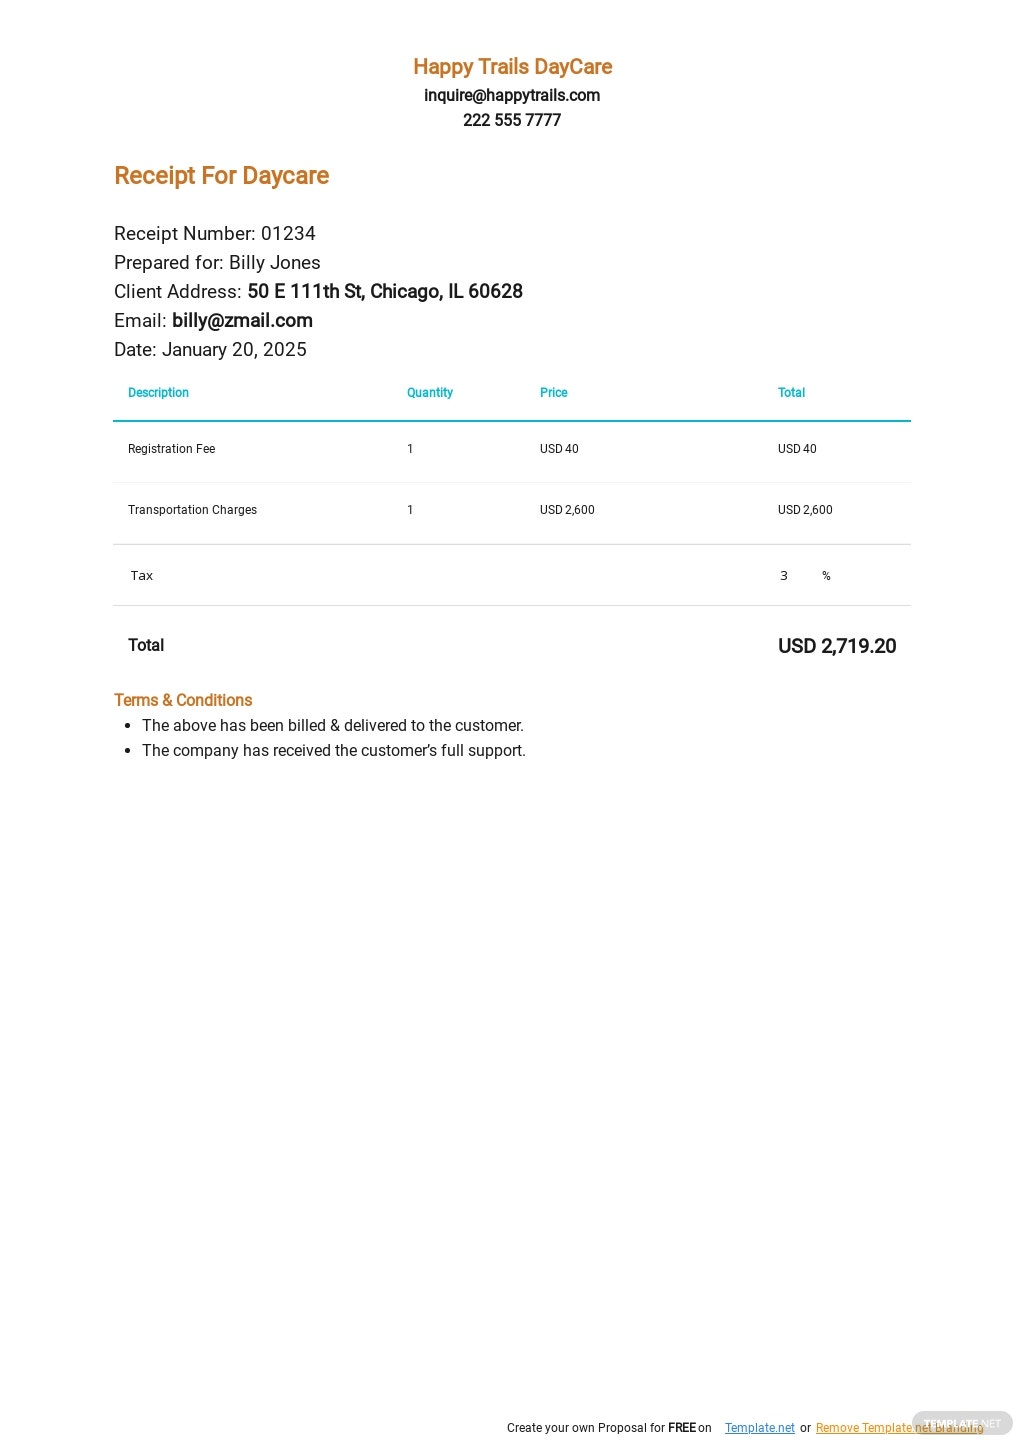 Receipt For Daycare Template.jpe